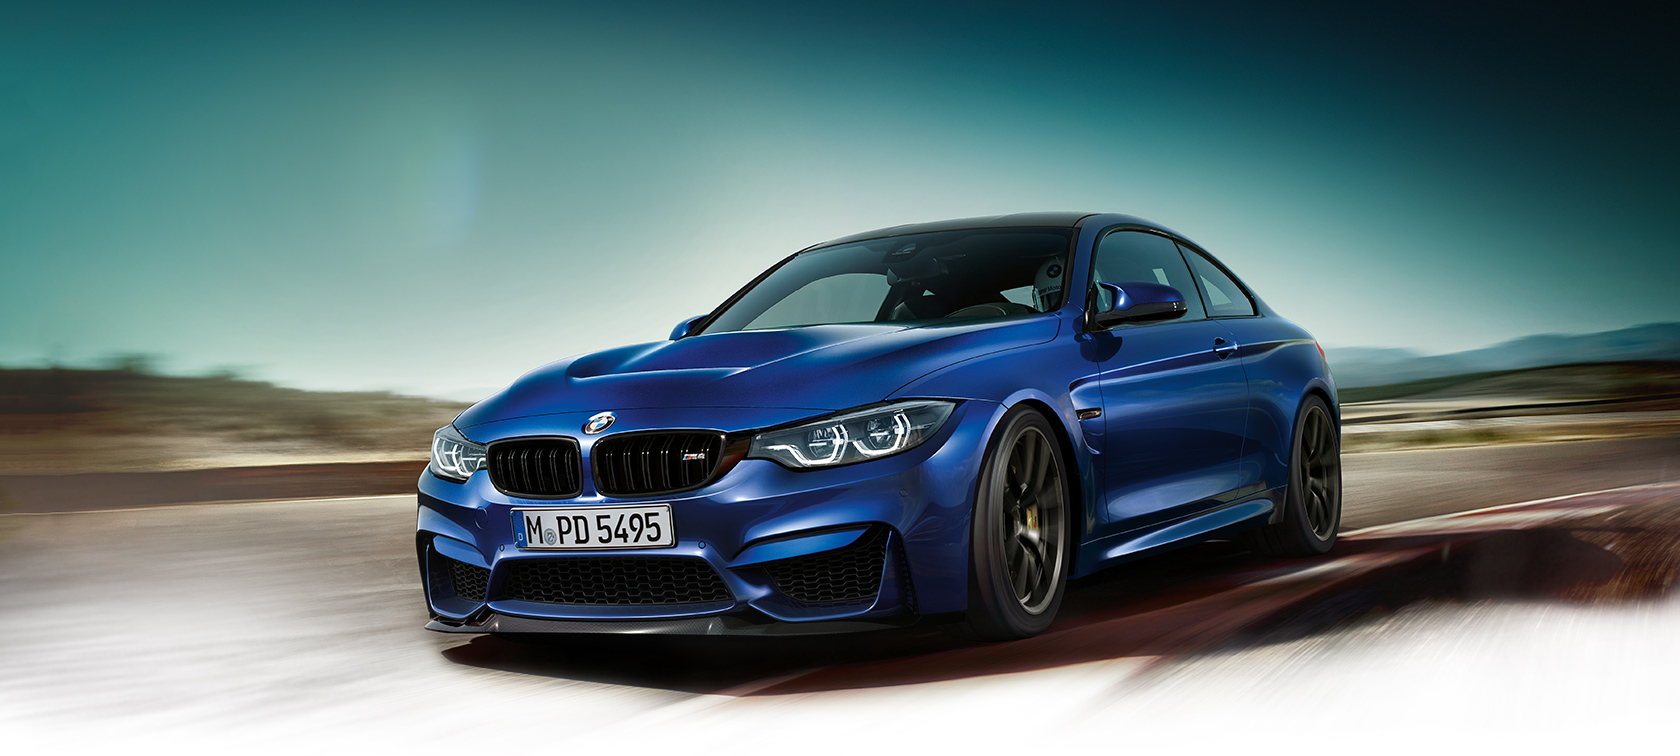 Bmw M4 Coupe The Special Edition Bmw South Africa